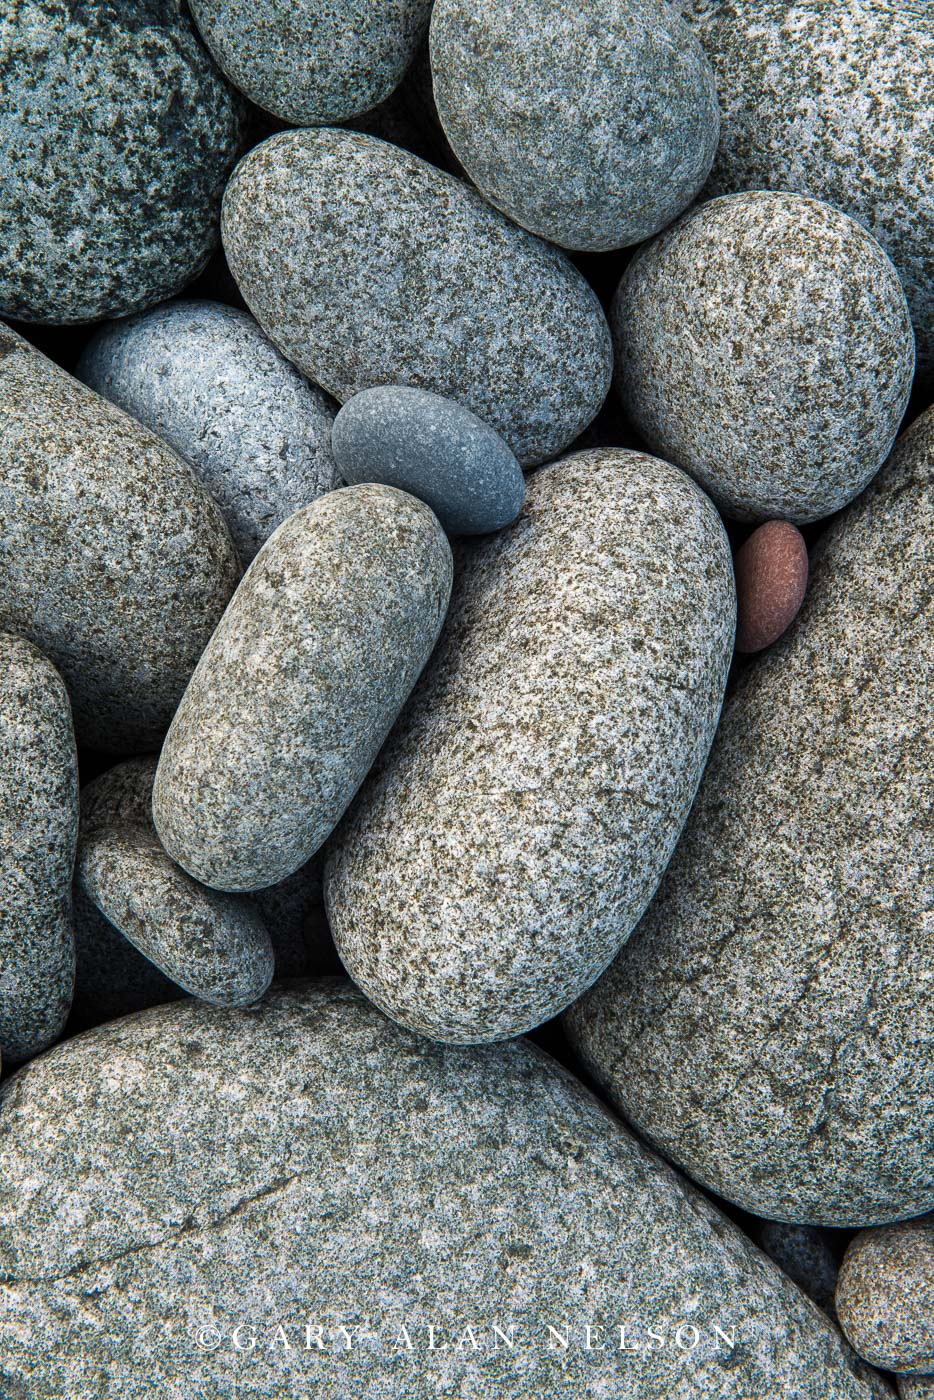 lake superior,minnesota, stones, surf, photo